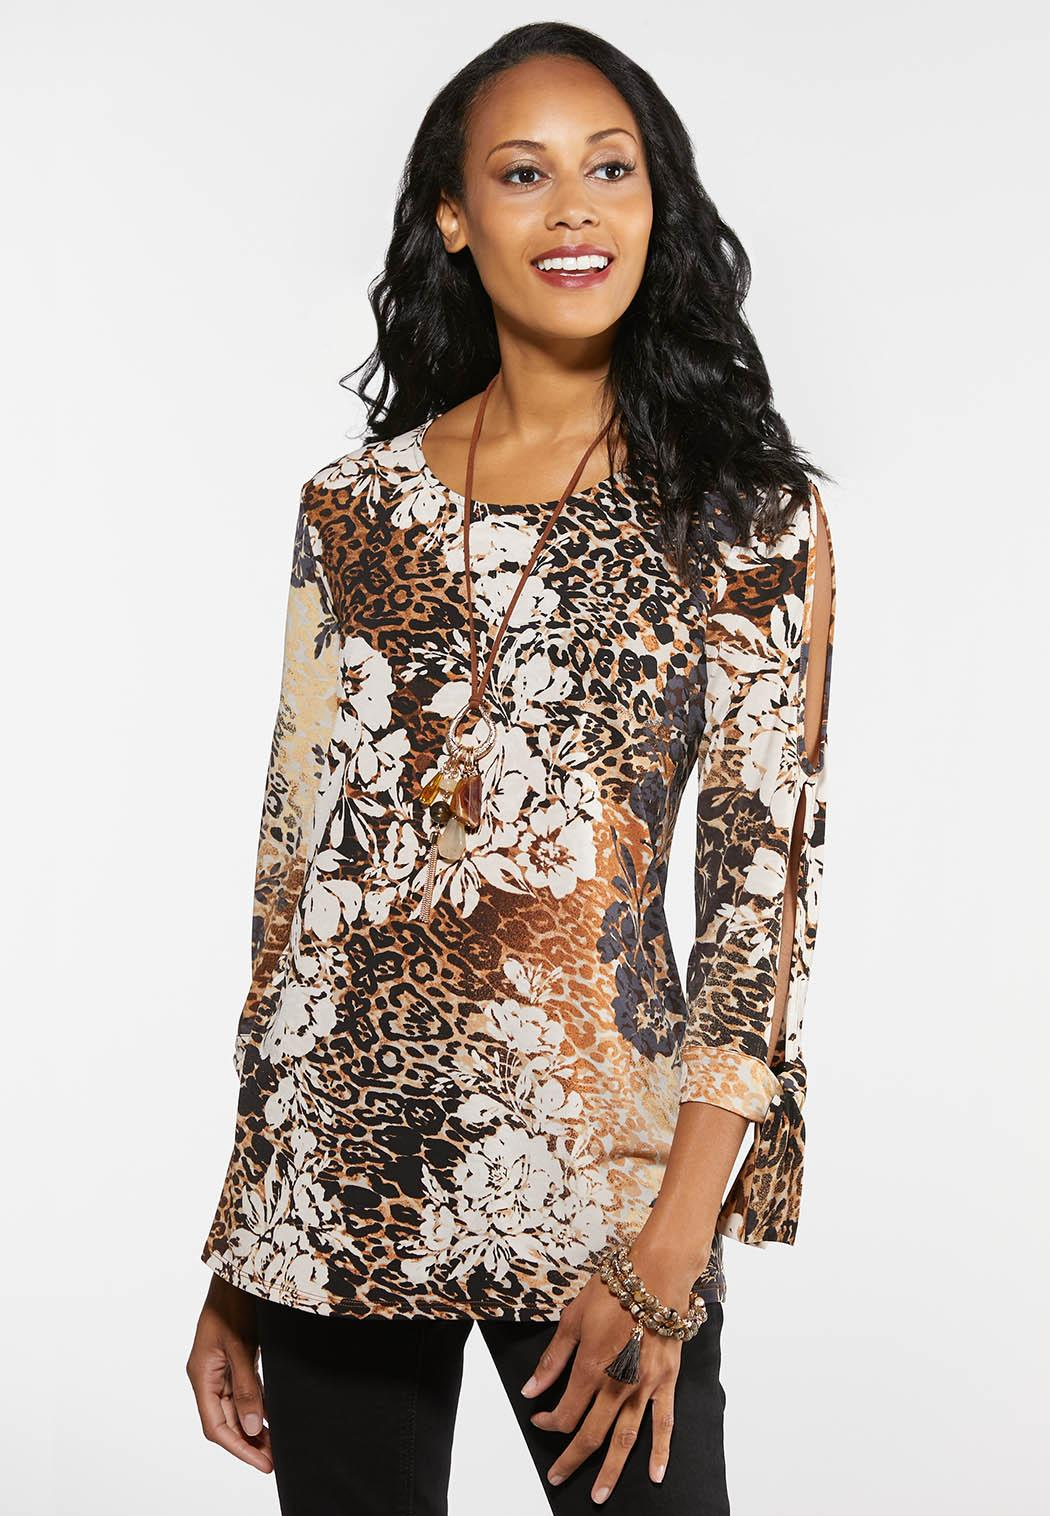 c3aabd4b3c6 Plus Size Tropical Leopard Top Tees & Amp ; Knit Tops Cato Fashions